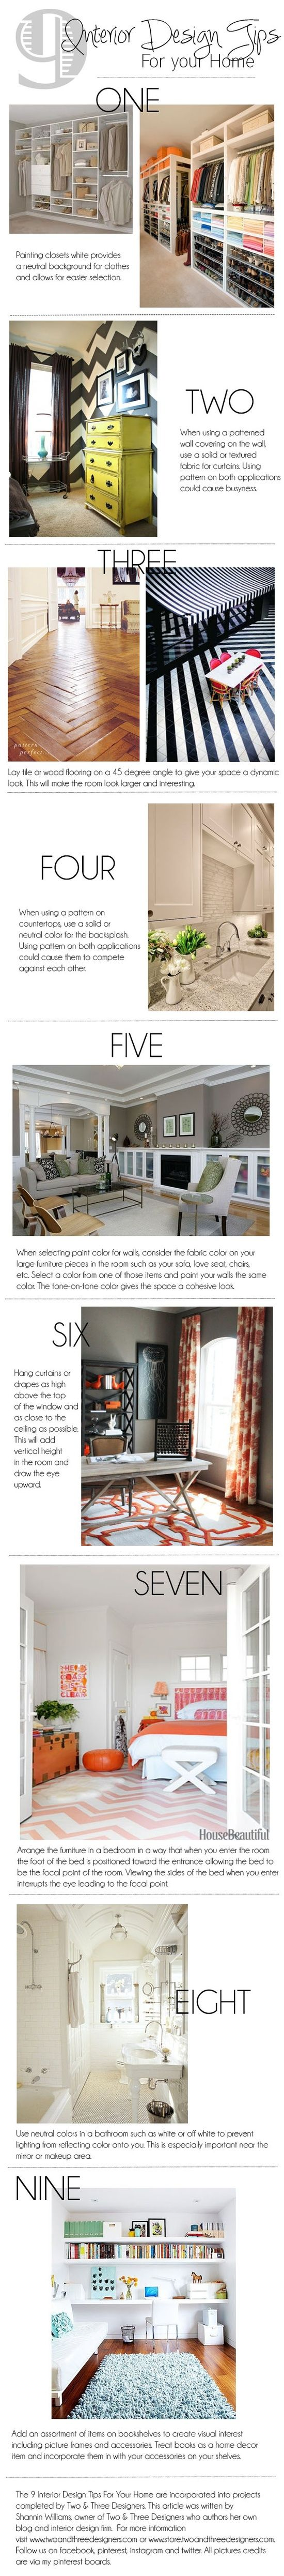 9 Interior Design Tips for your Home from Two